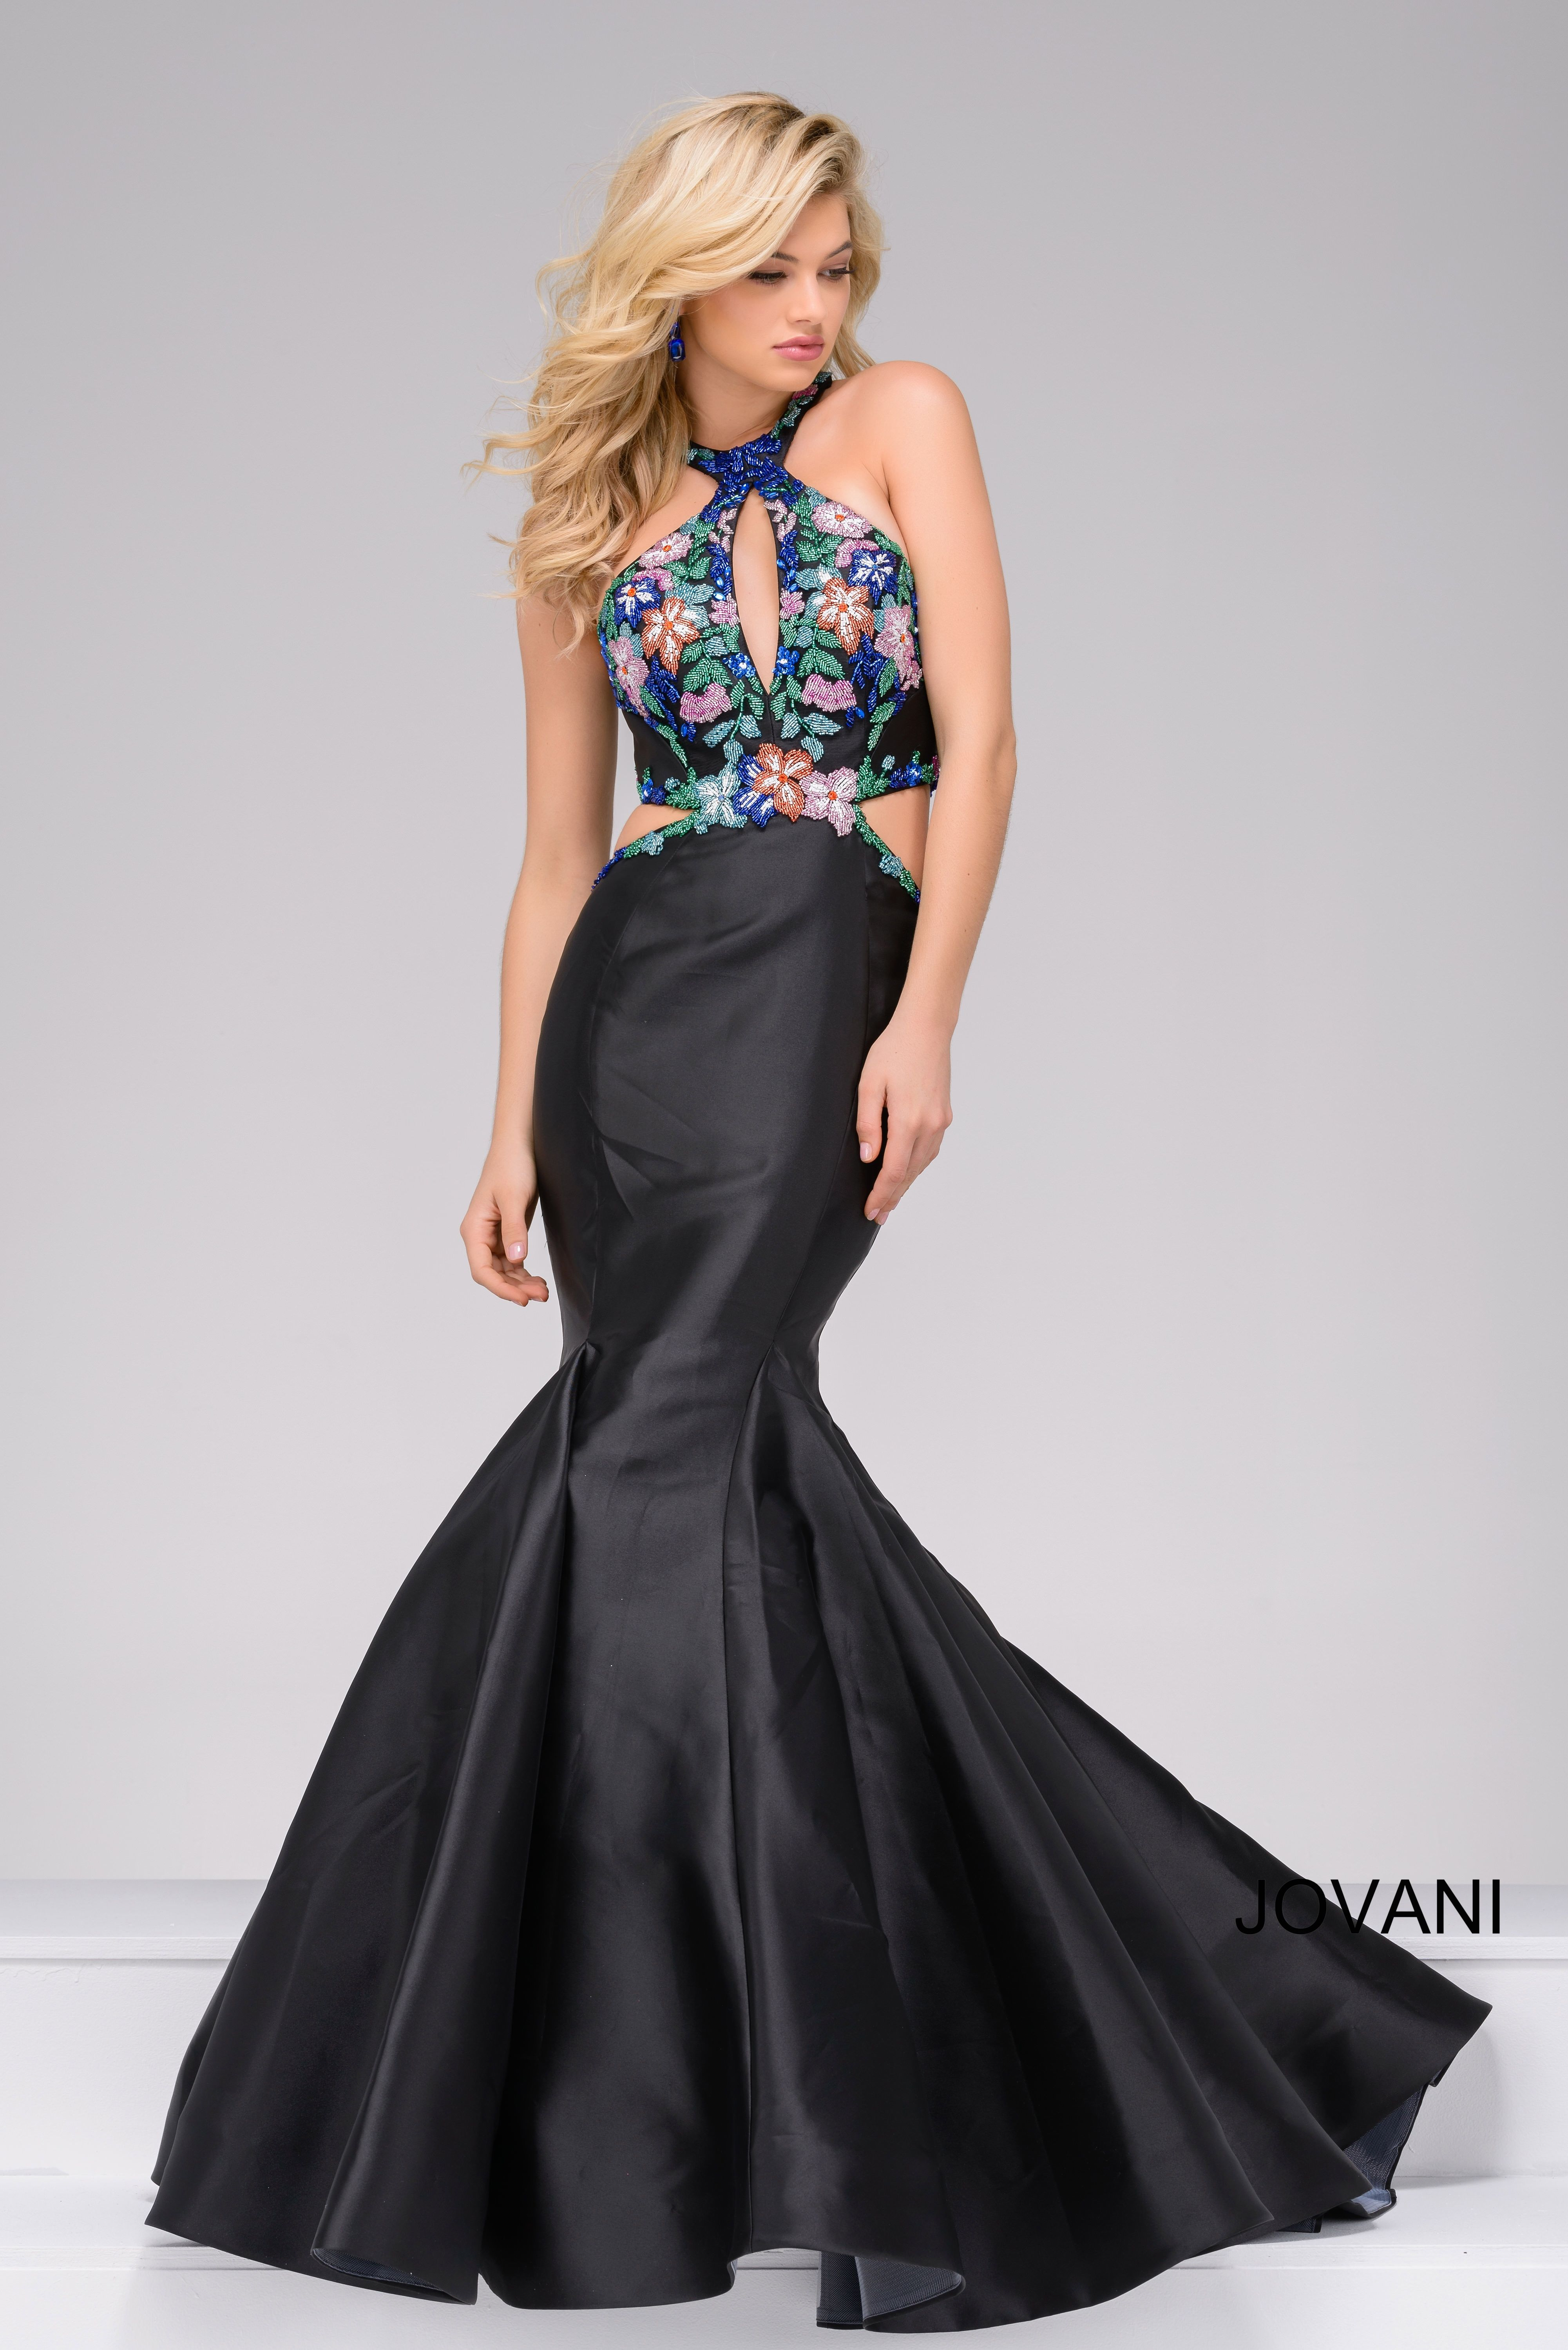 Be bold at prom k in jovani style available at